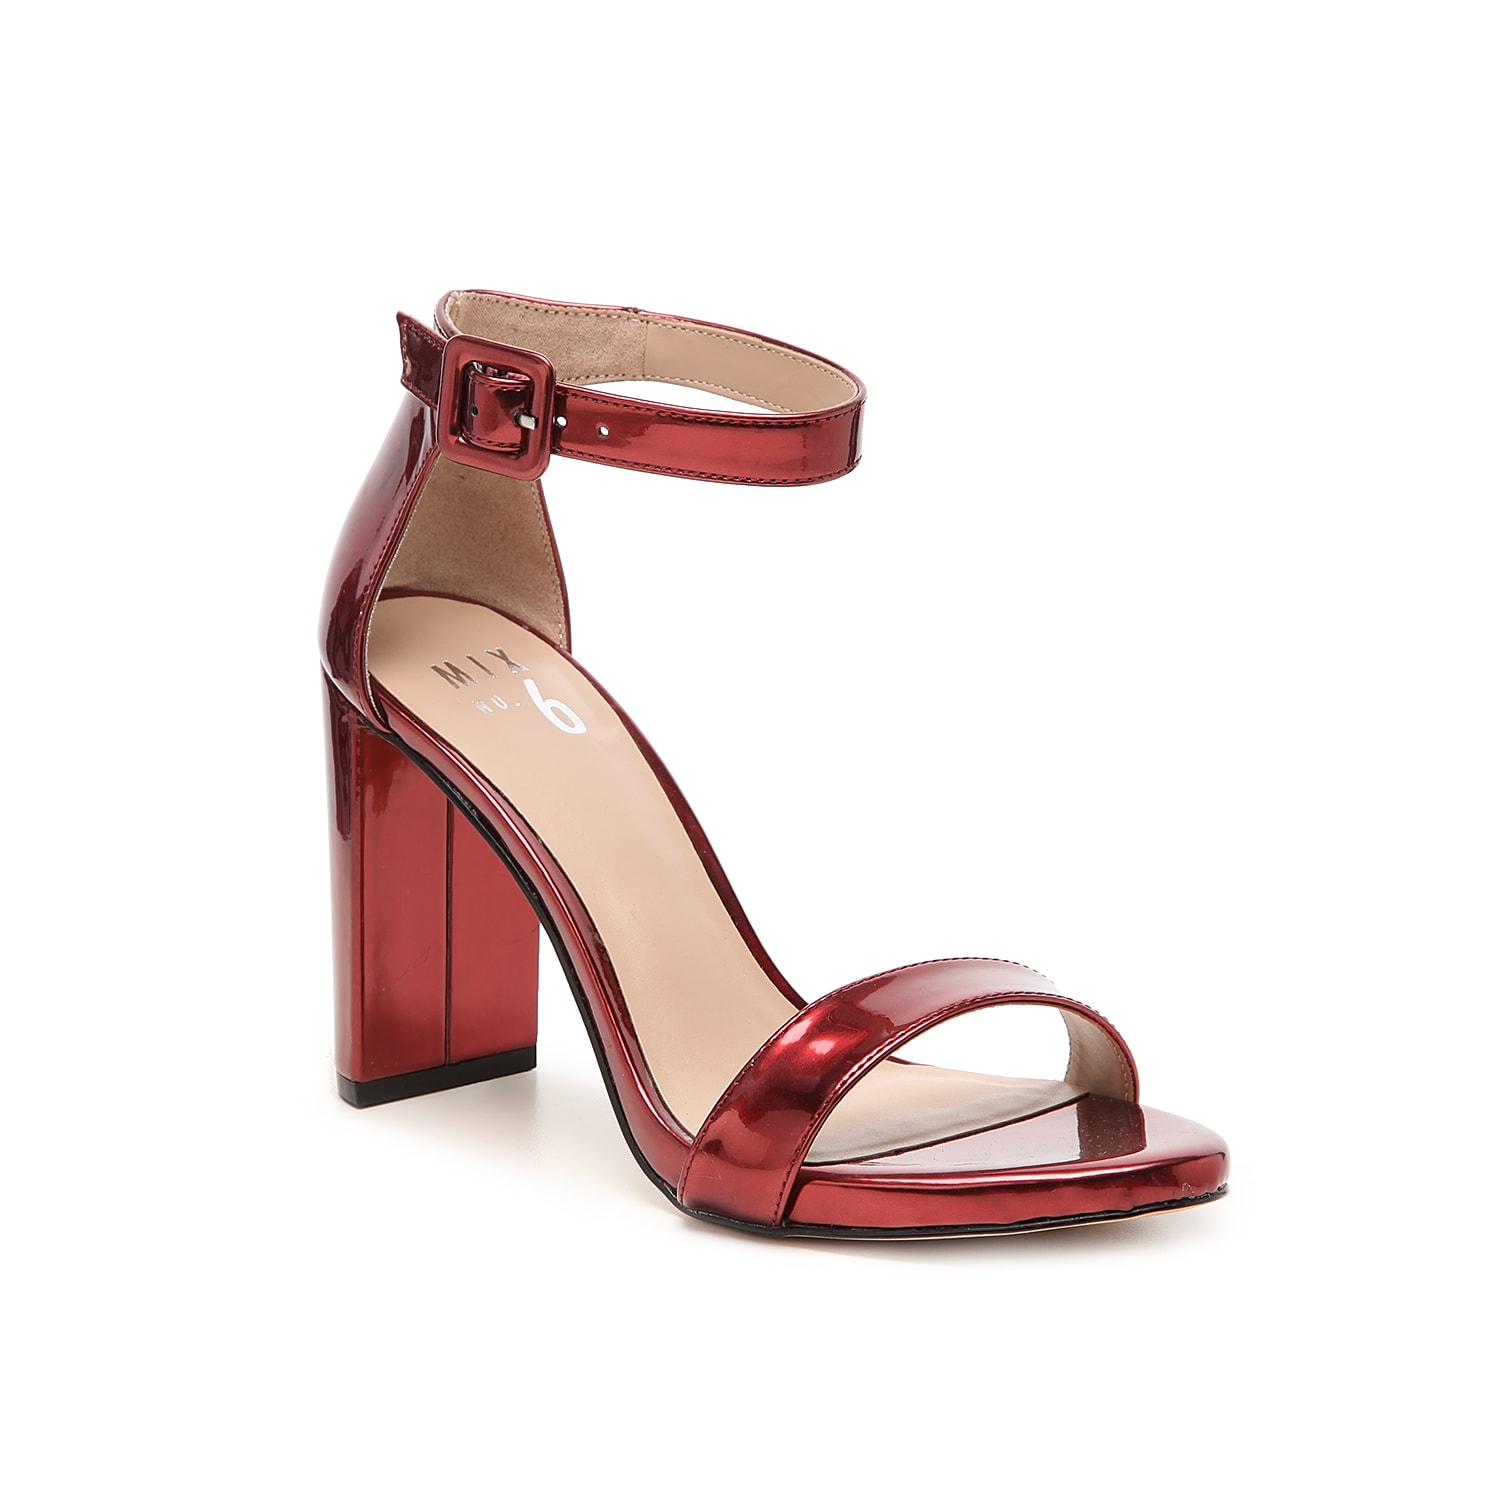 Flaunt chic style with the two-piece Cym sandal from Mix No. 6. An oversized buckle and block heel add modern finishing touches to this pair.